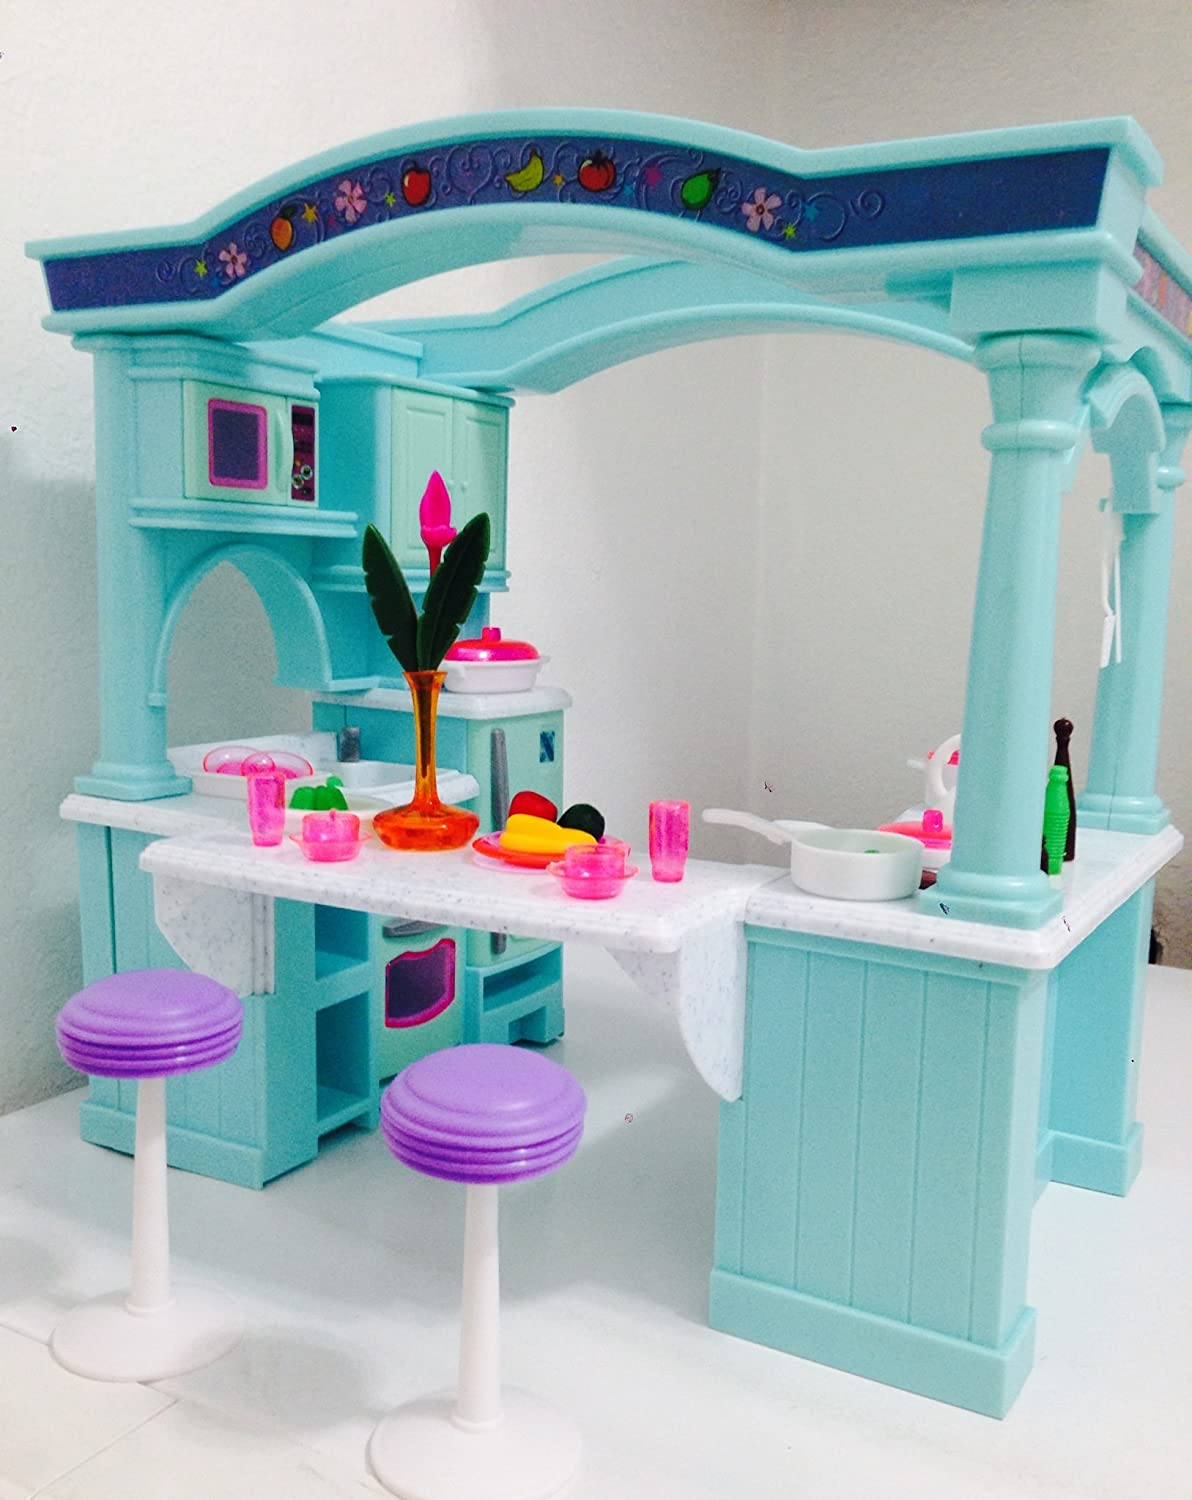 Dollhouse Doll Furniture Barbie Size Room Playset Toy ...